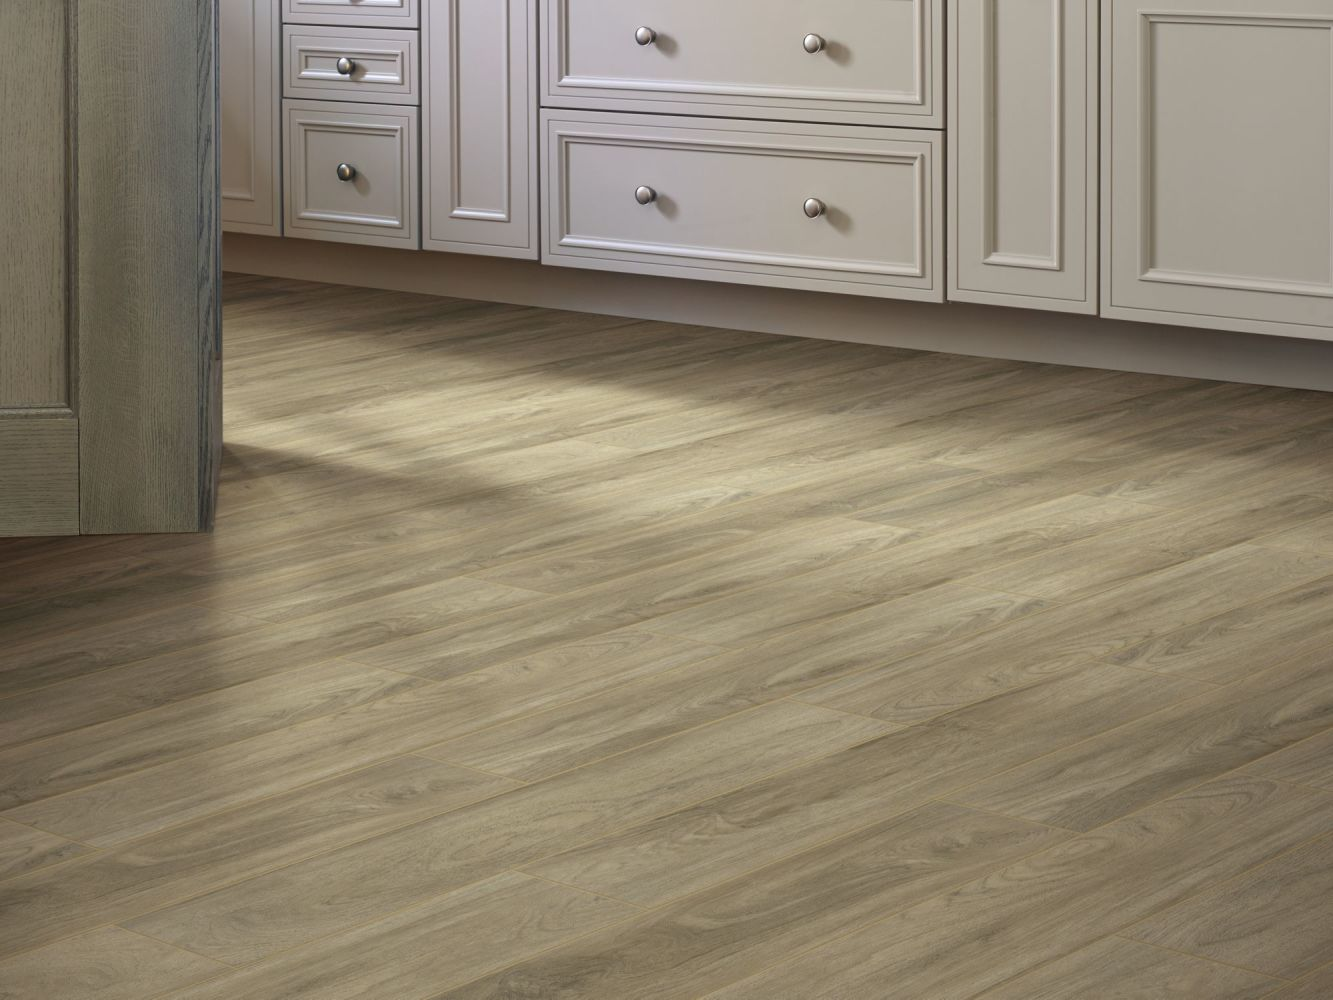 Shaw Floors Resilient Property Solutions Supino HD Plus Capri 07048_VE231